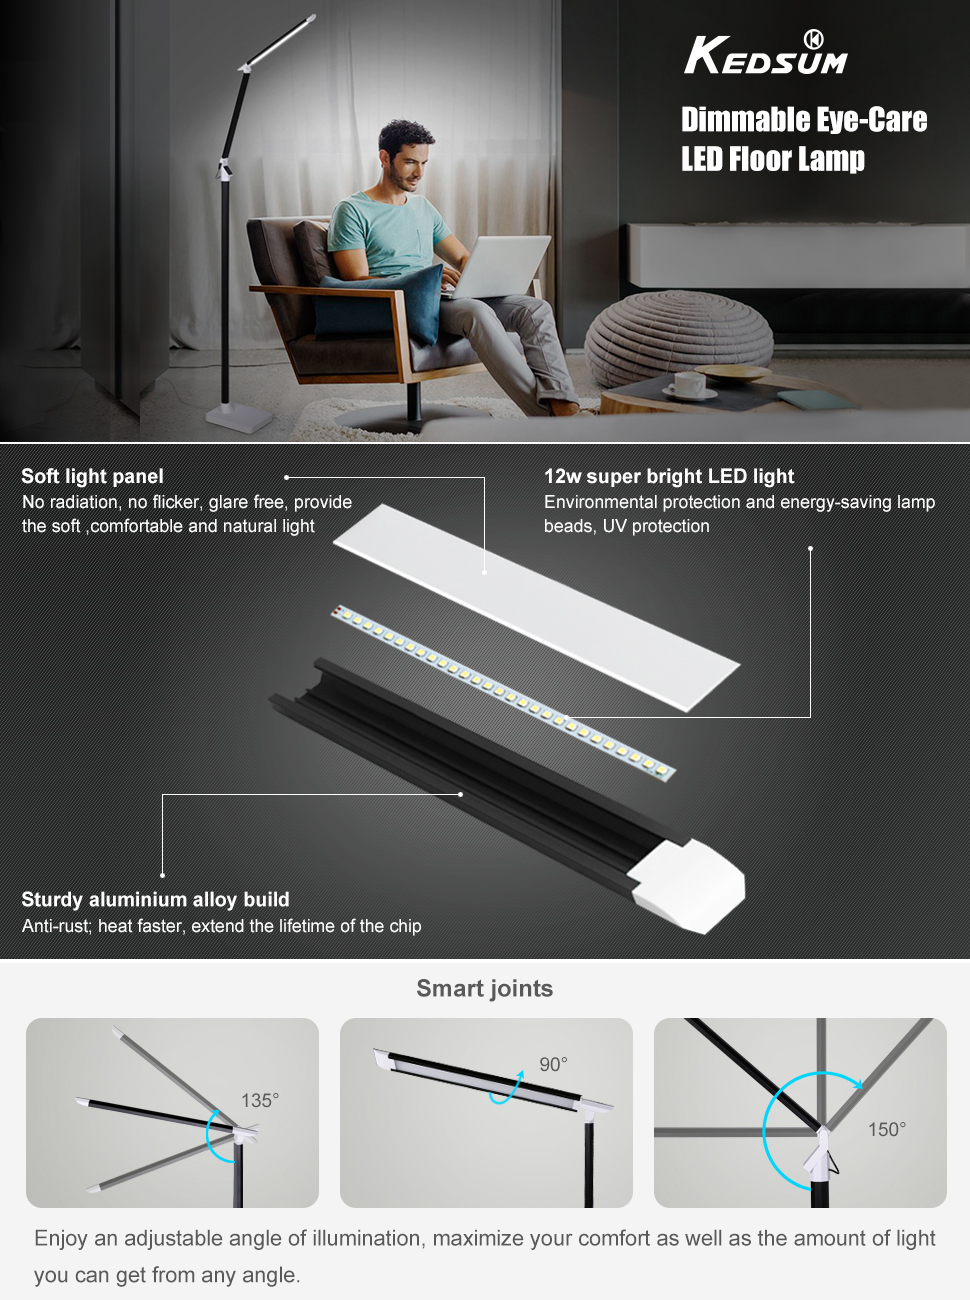 Kedsum dimmable eye care led floor lamp with remote control switch kedsum 12 watt remote control led floor lamp aloadofball Images